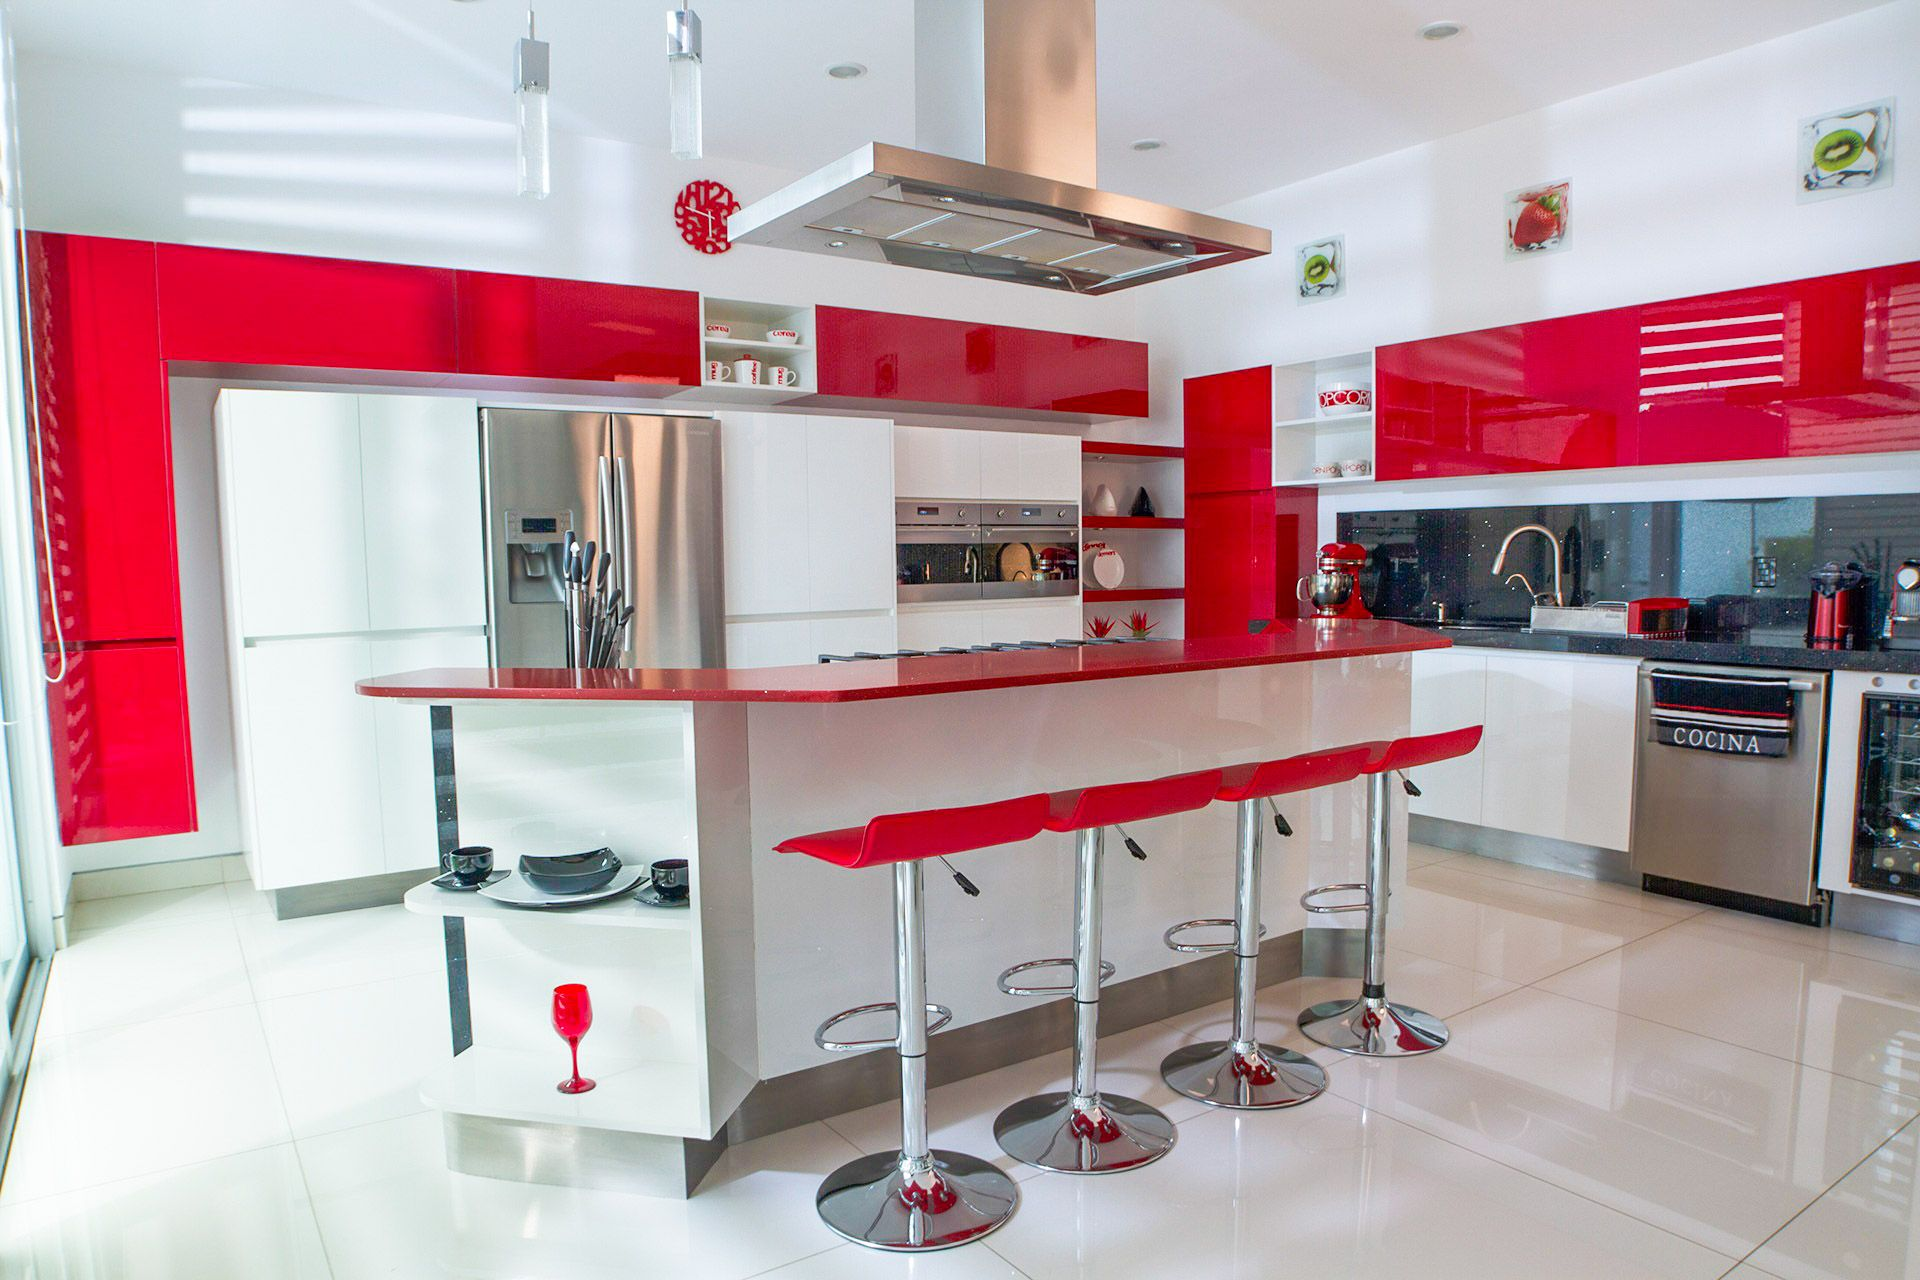 Download Wallpaper White Kitchen Cabinets With Red Doors